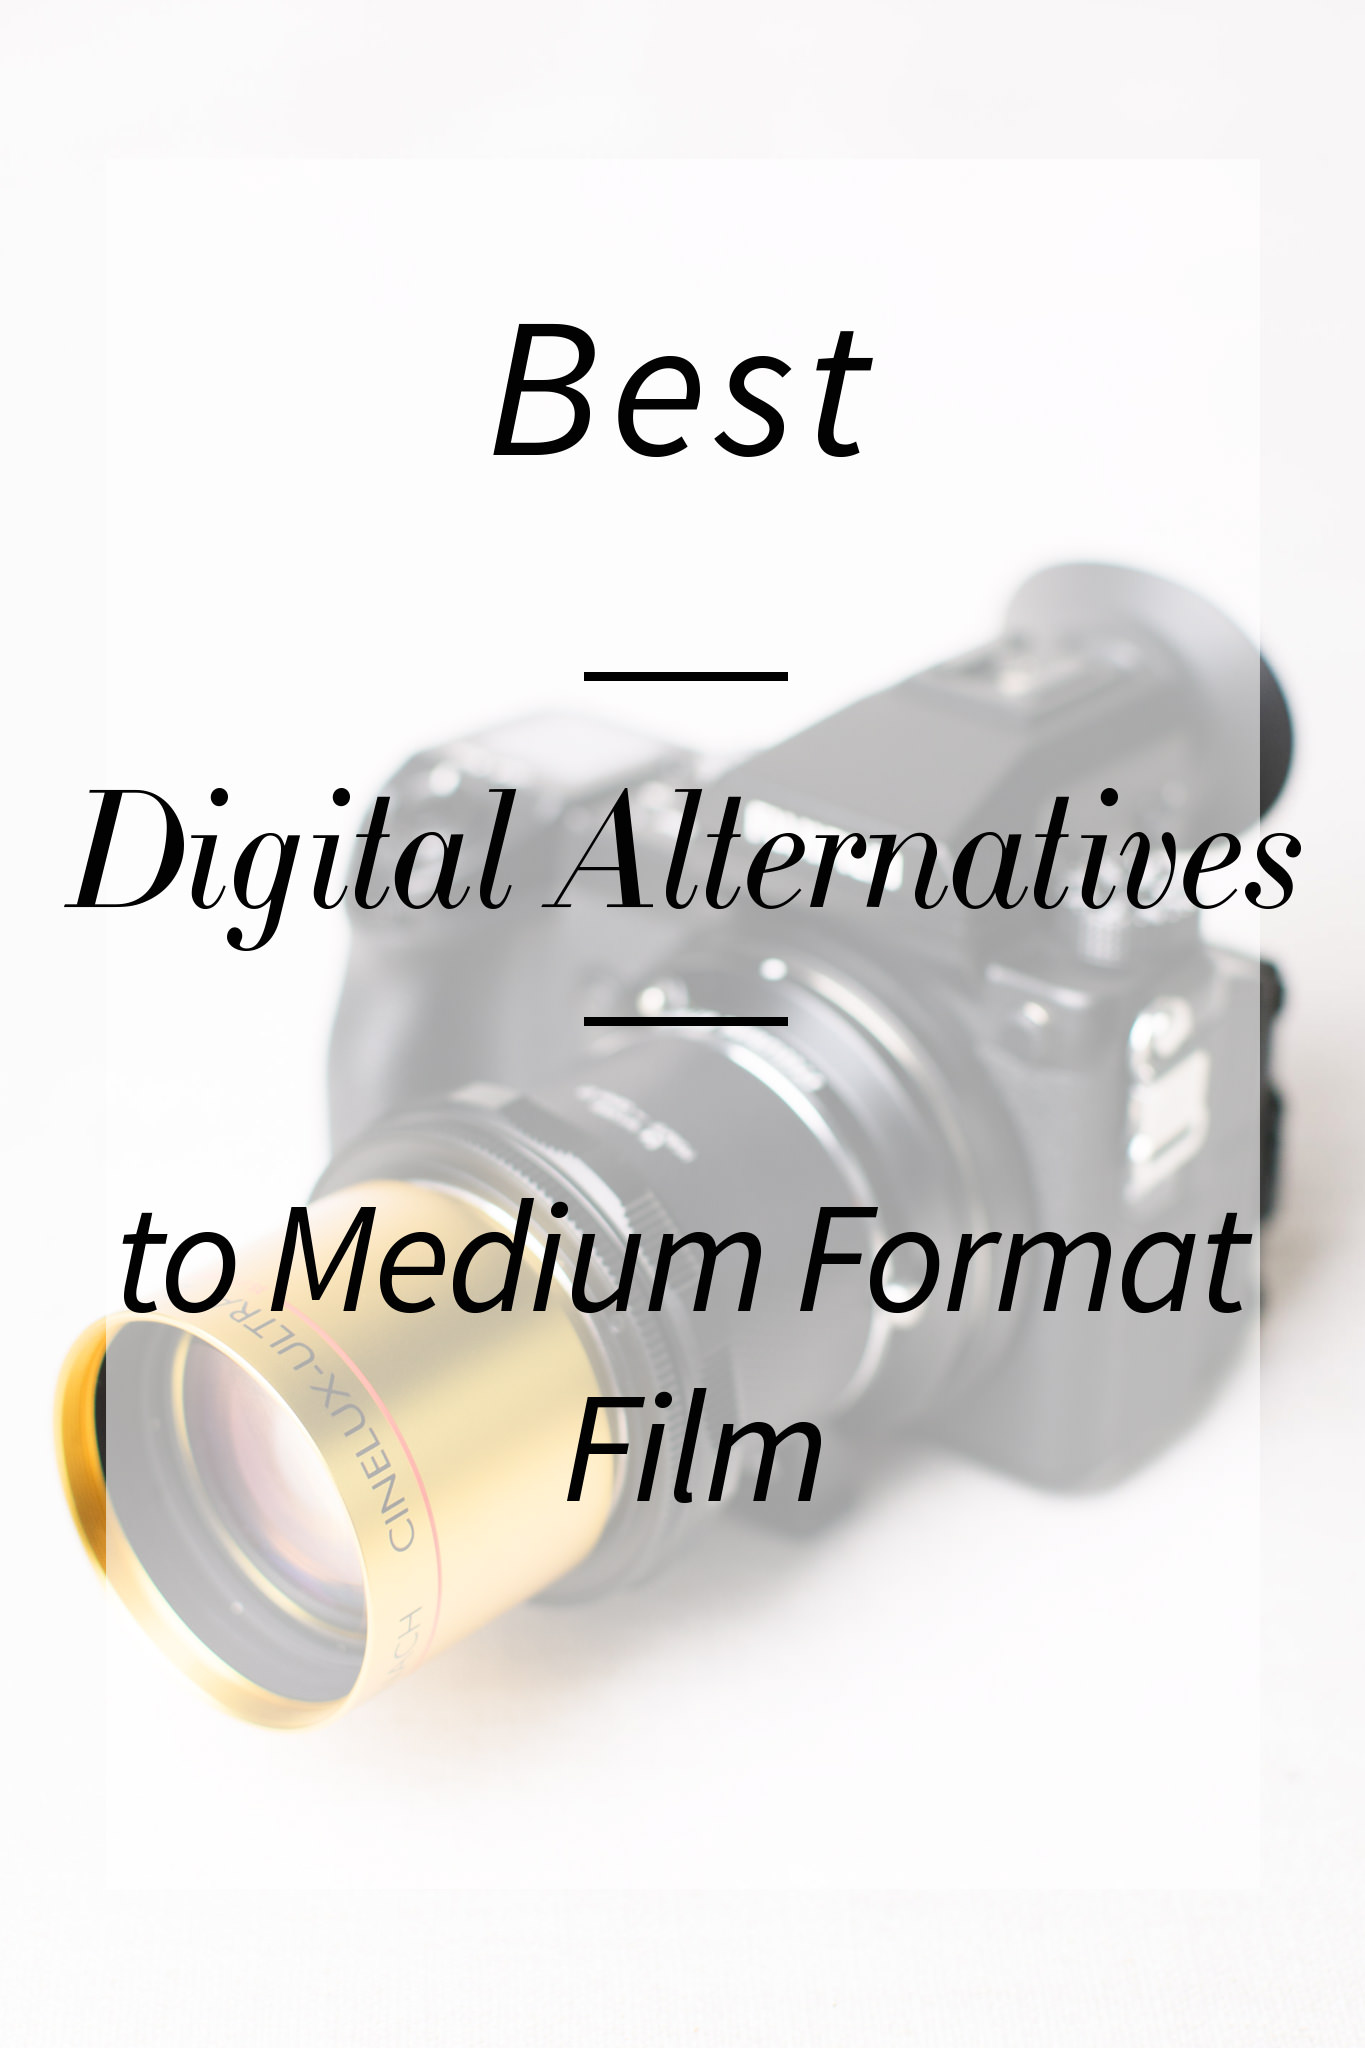 Best Digital Alternative to Medium Format Film Graphic Overlay